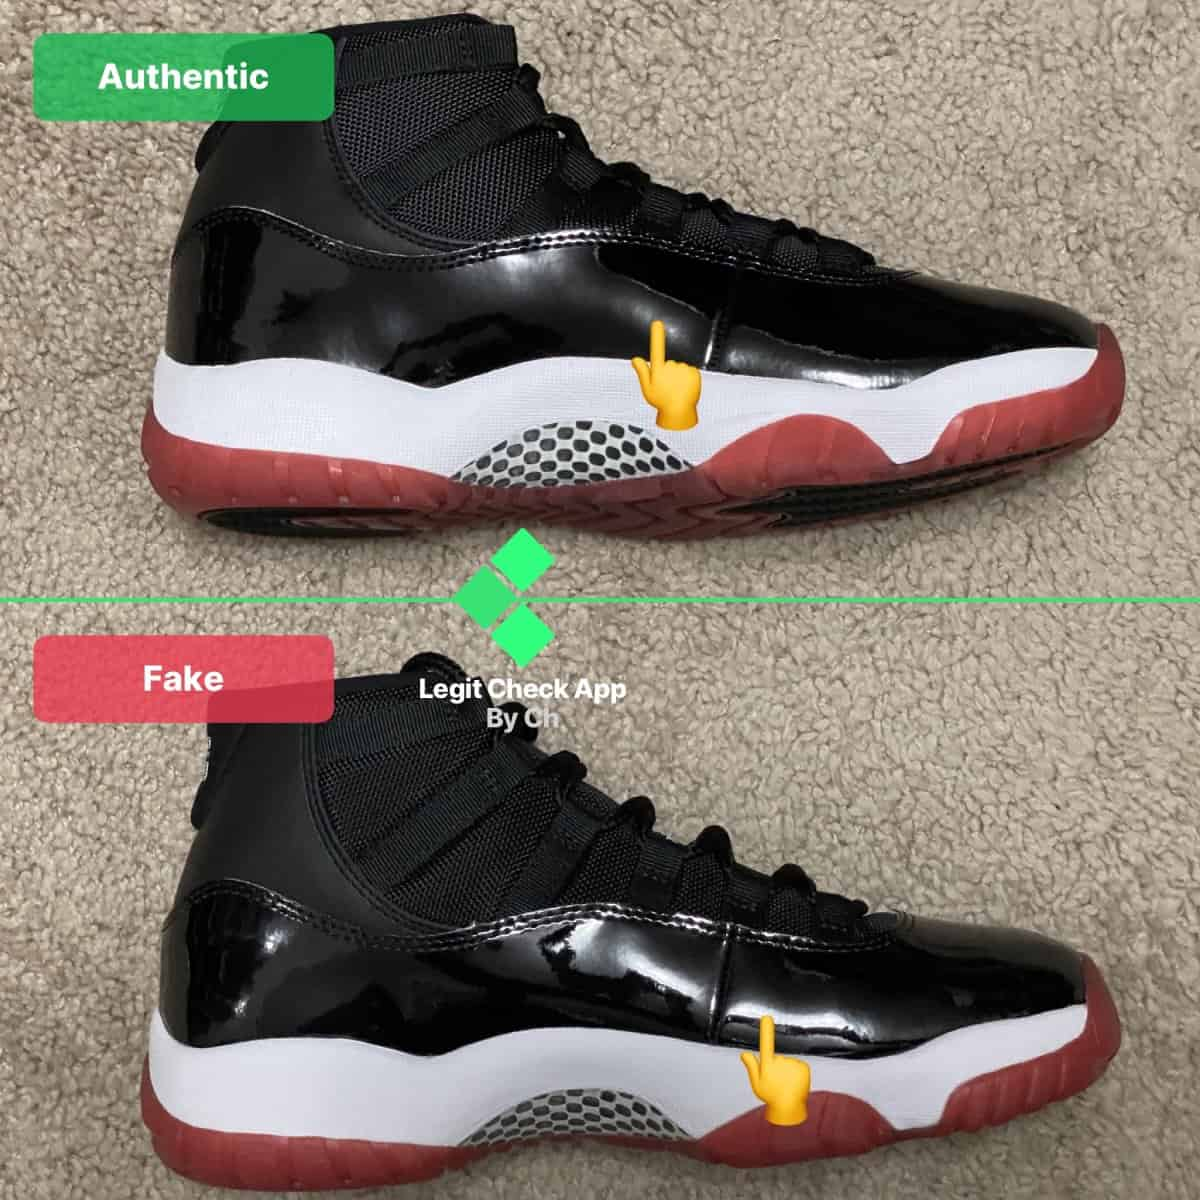 air jordan xi real vs fake